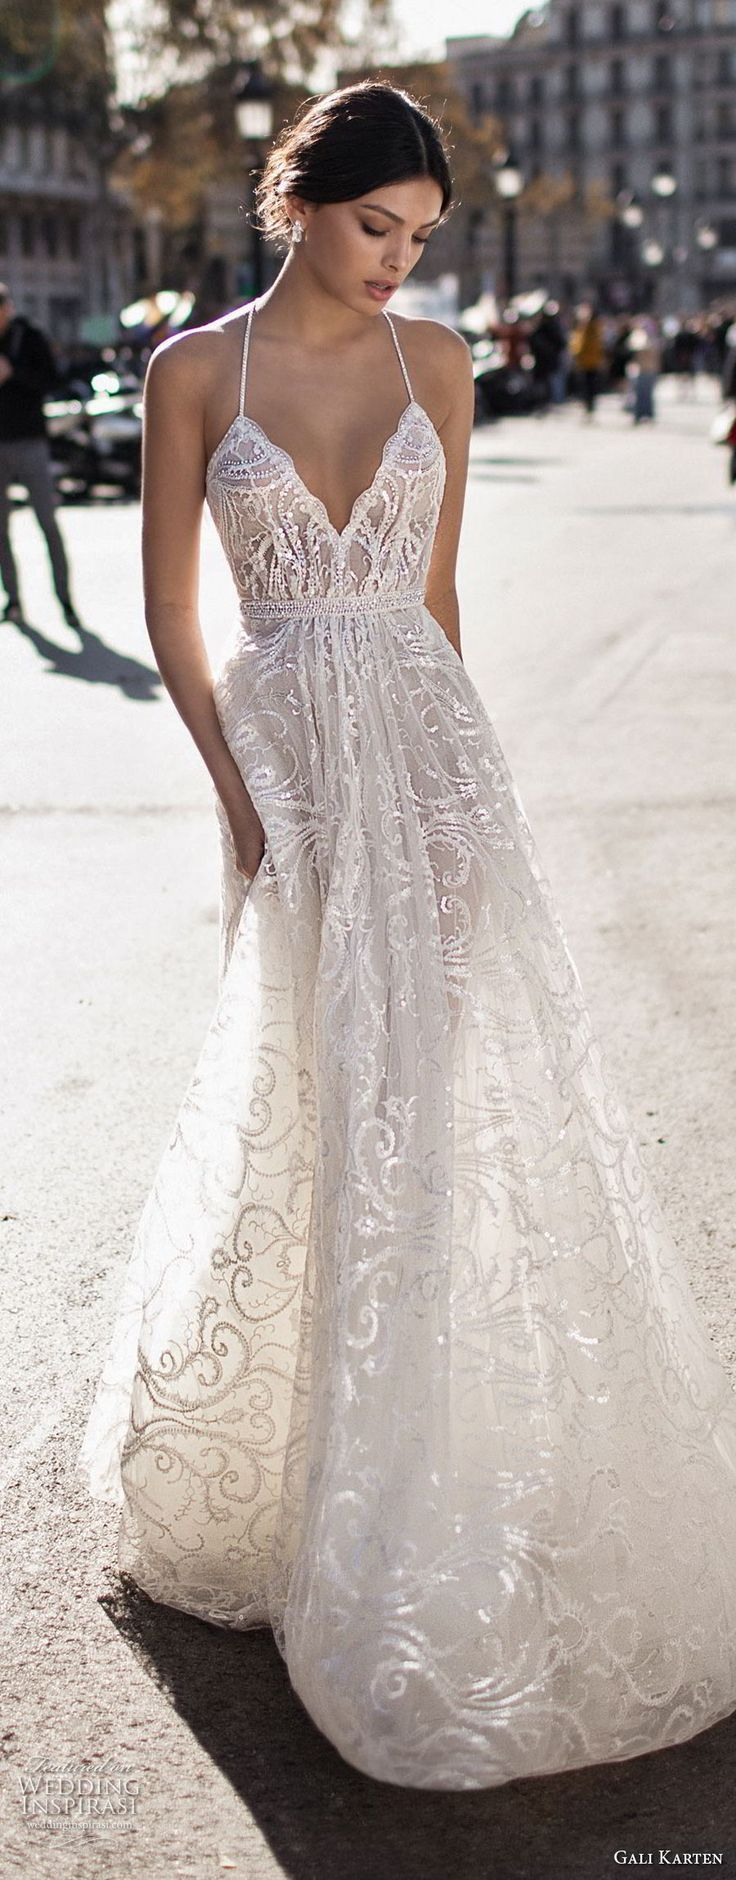 Gali Cards 2017 Wedding Dresses - Wedding in Barcelona and Bridal Collection